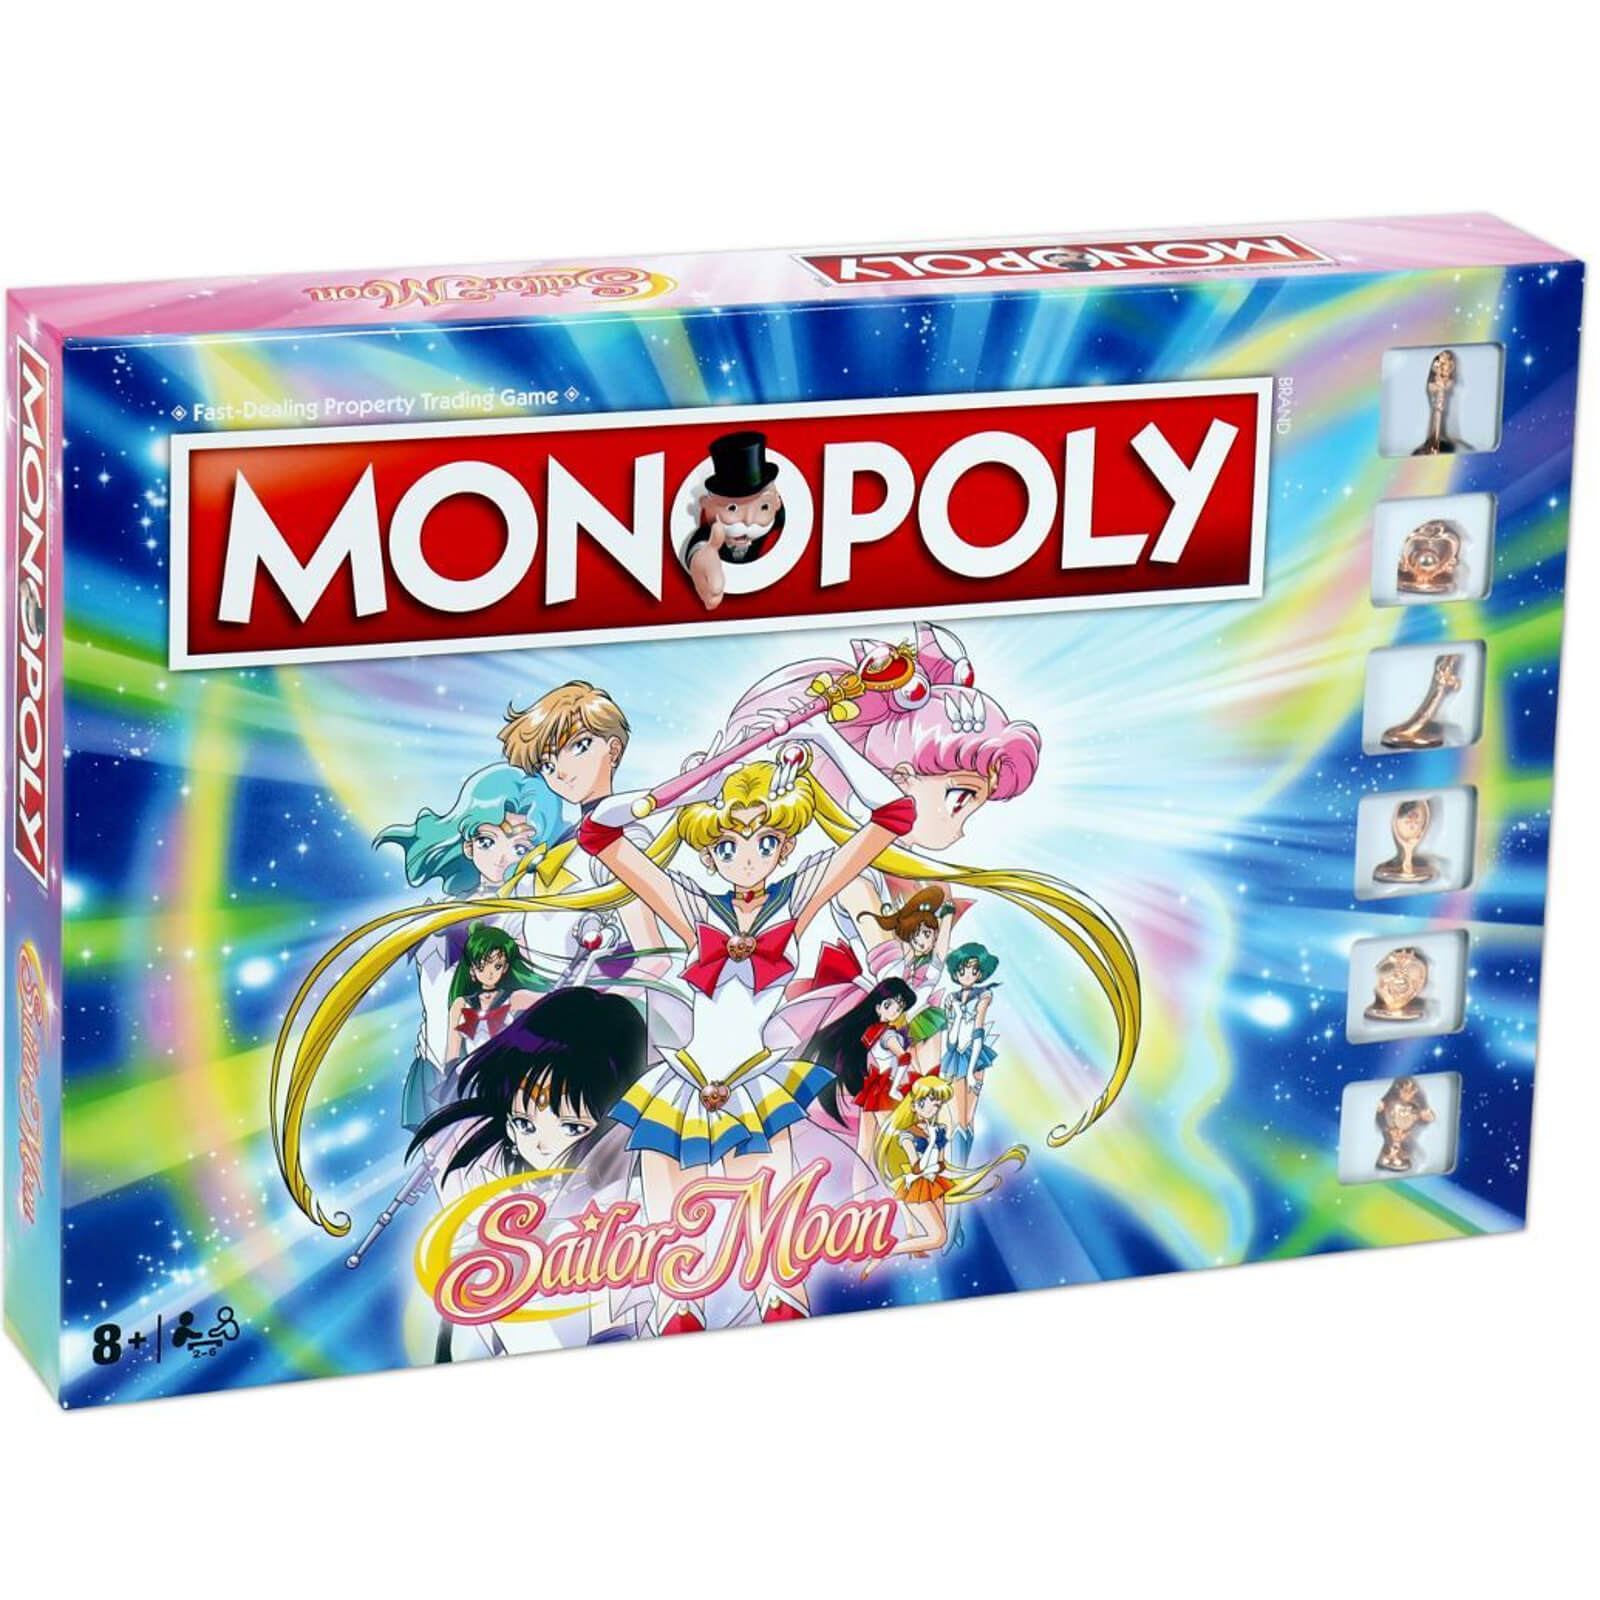 Image of Monopoly Board Game - Sailor Moon Edition